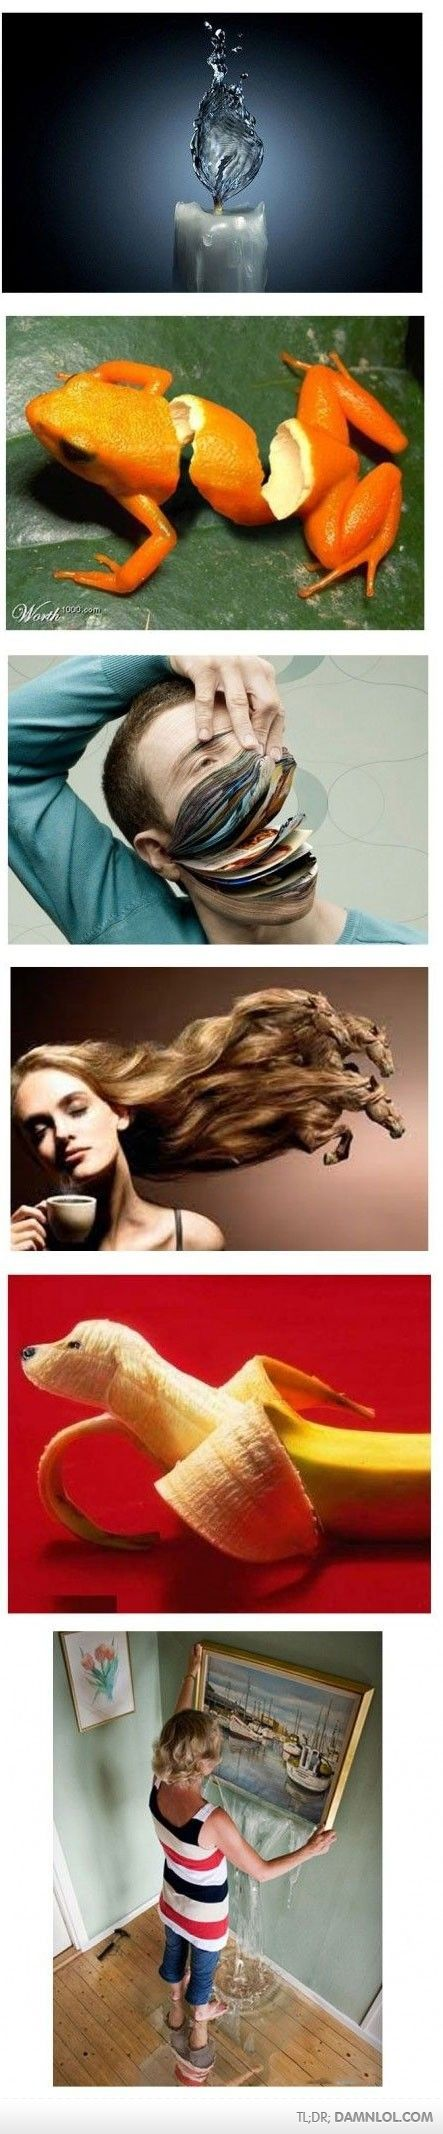 cool photoshop pictures